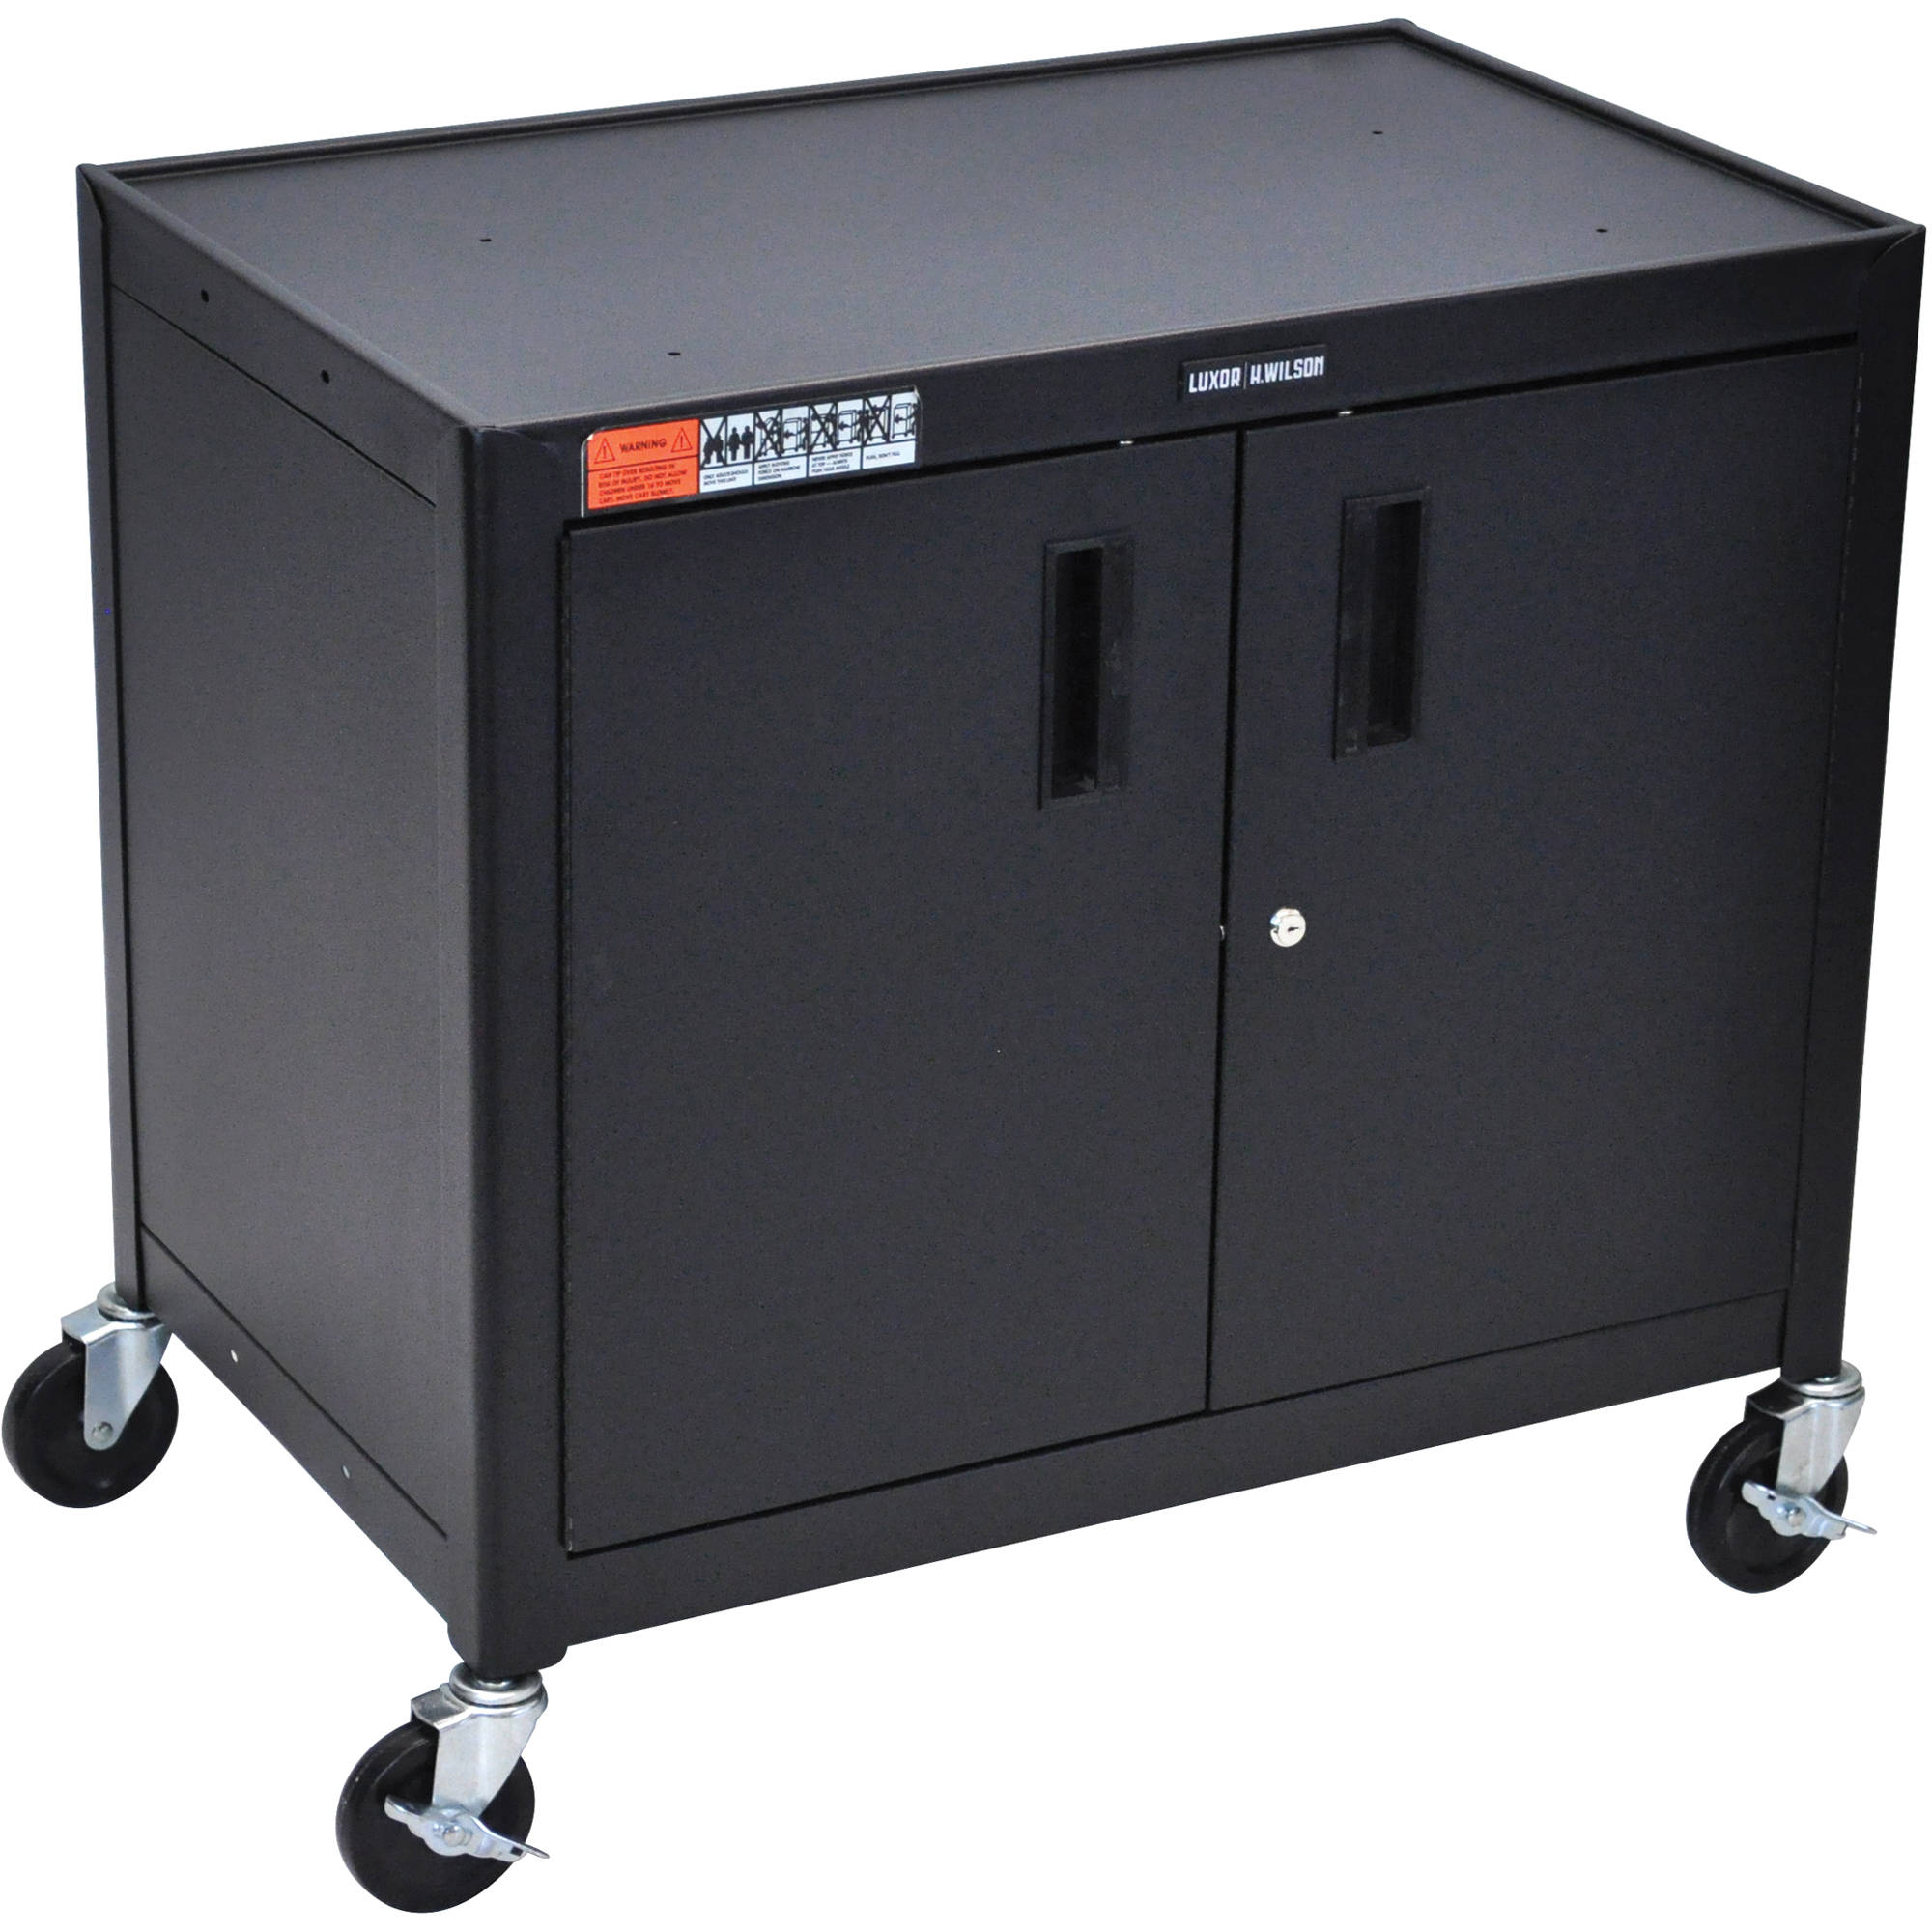 Luxor Av30xlc Steel Mobile Cabinet Cart Av30xlc B Amp H Photo